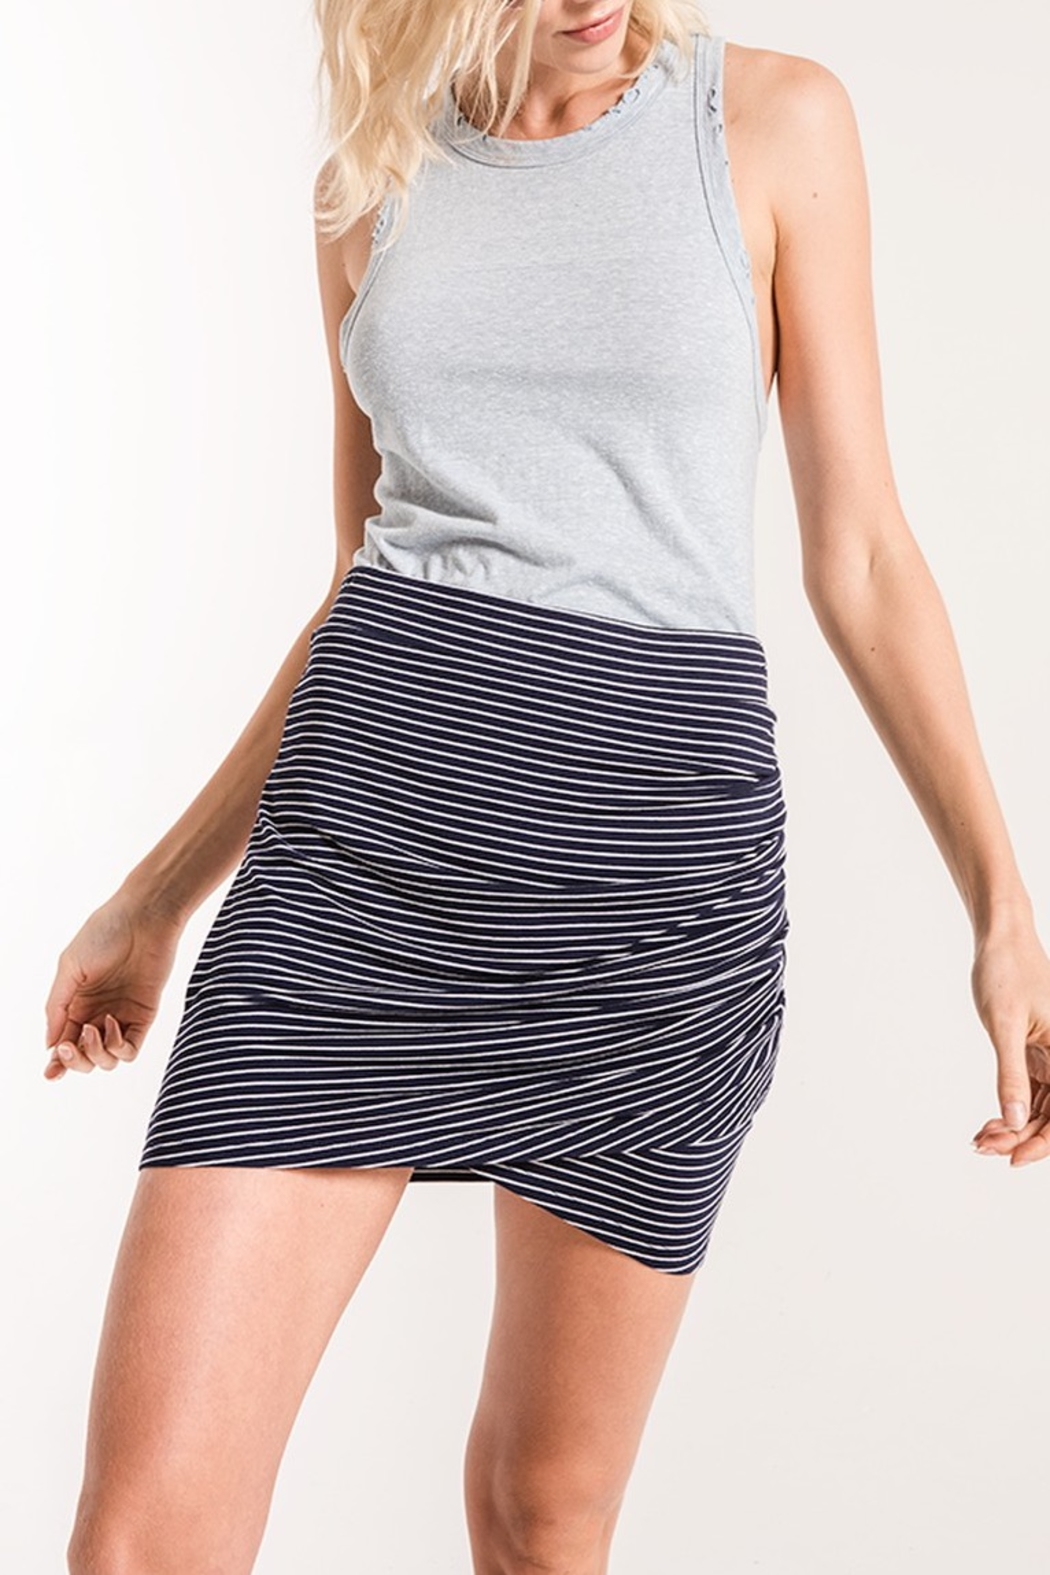 z supply Micro Stripe Wrap Skirt - Front Cropped Image